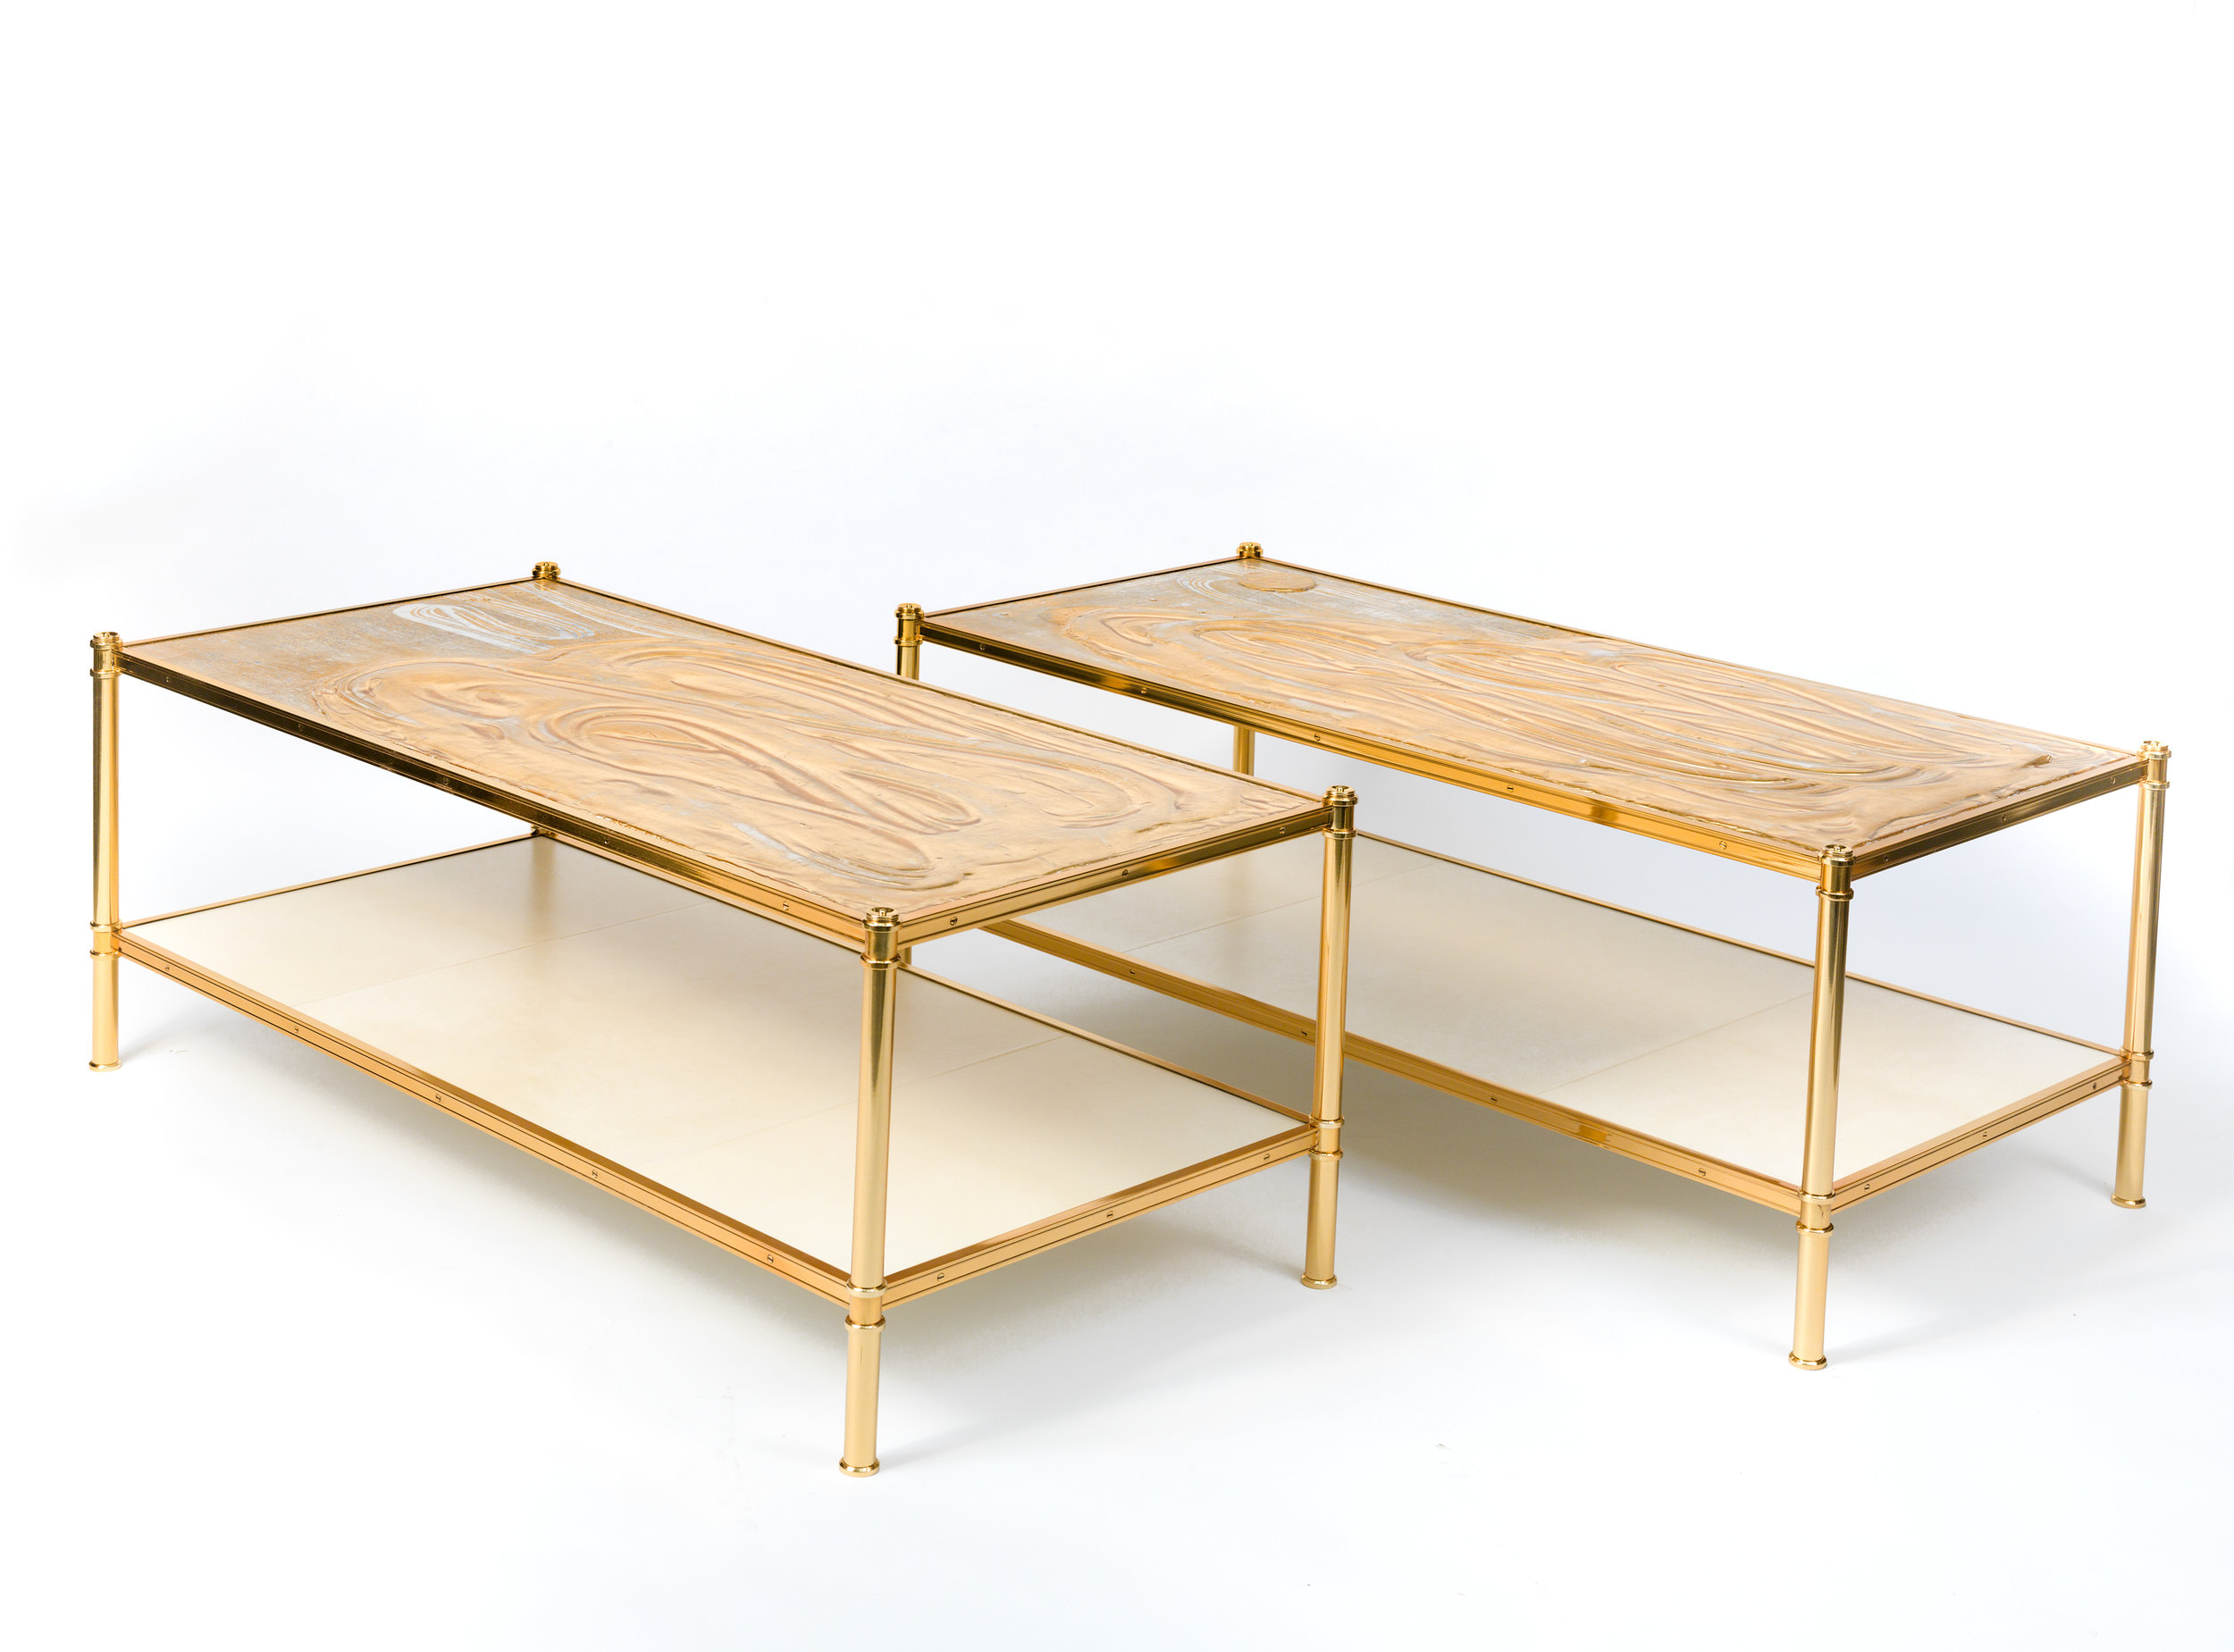 Custom pair of Cole Porter coffee tables by Victoria & Son for Alex Papachristidis featuring the work of Nancy Lorenz